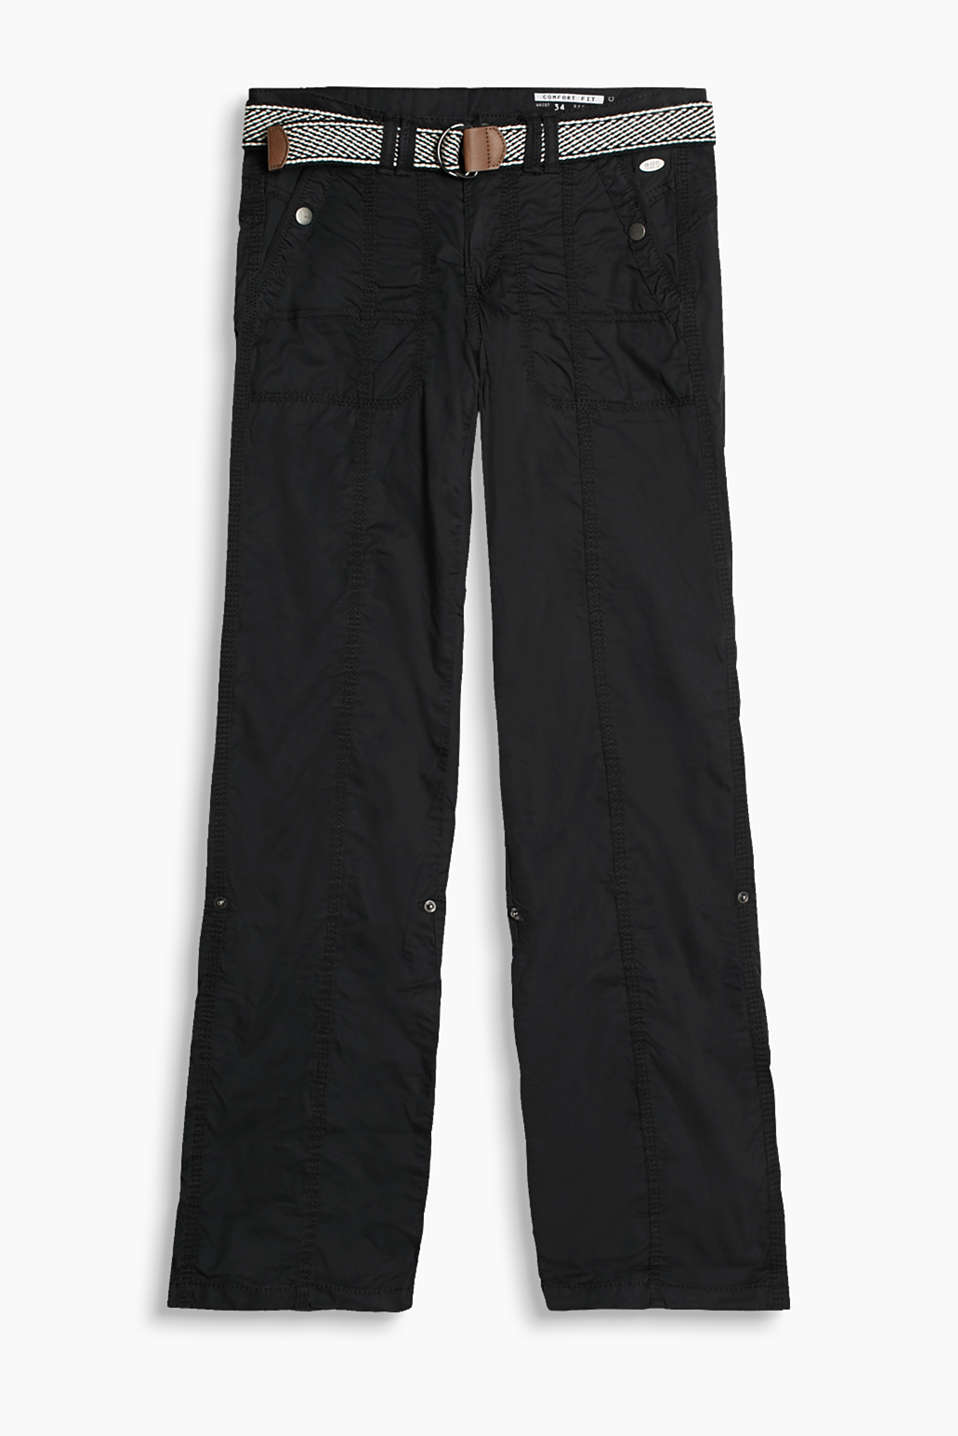 edc - PLAY trousers in 100% cotton